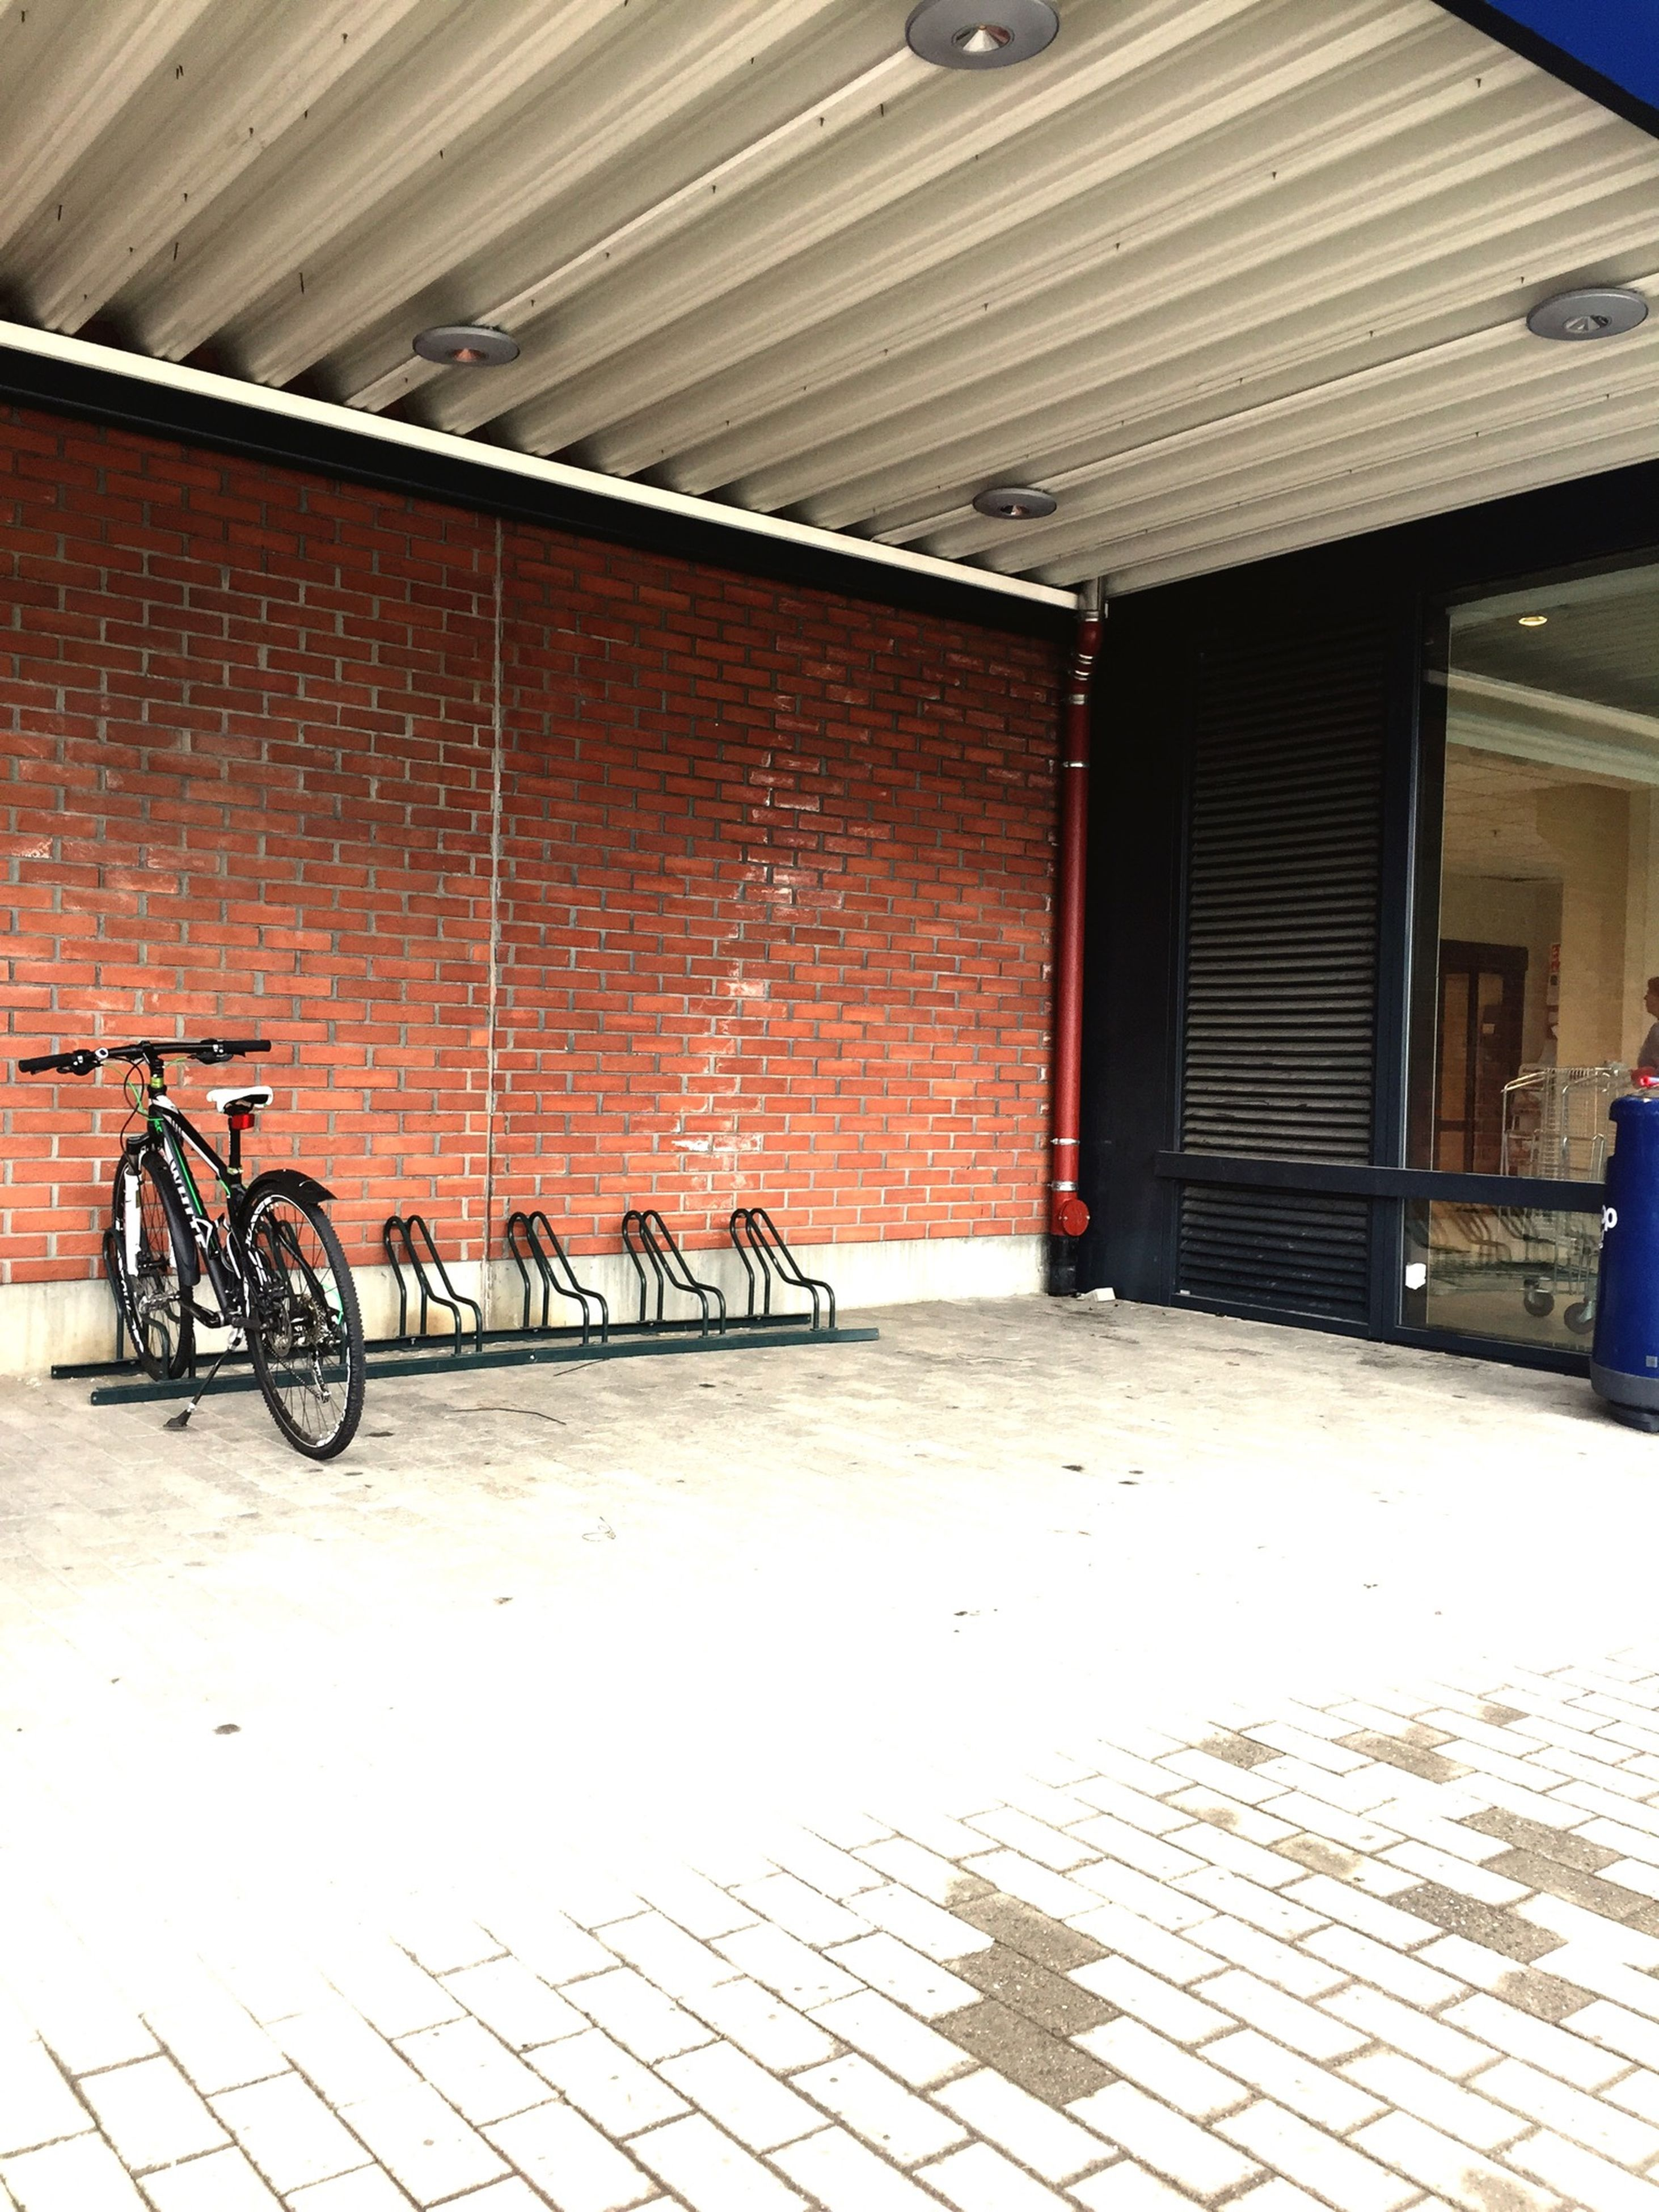 architecture, built structure, transportation, bicycle, empty, absence, parking lot, building exterior, indoors, stationary, door, graffiti, wall - building feature, closed, parking, mode of transport, cobblestone, no people, illuminated, street